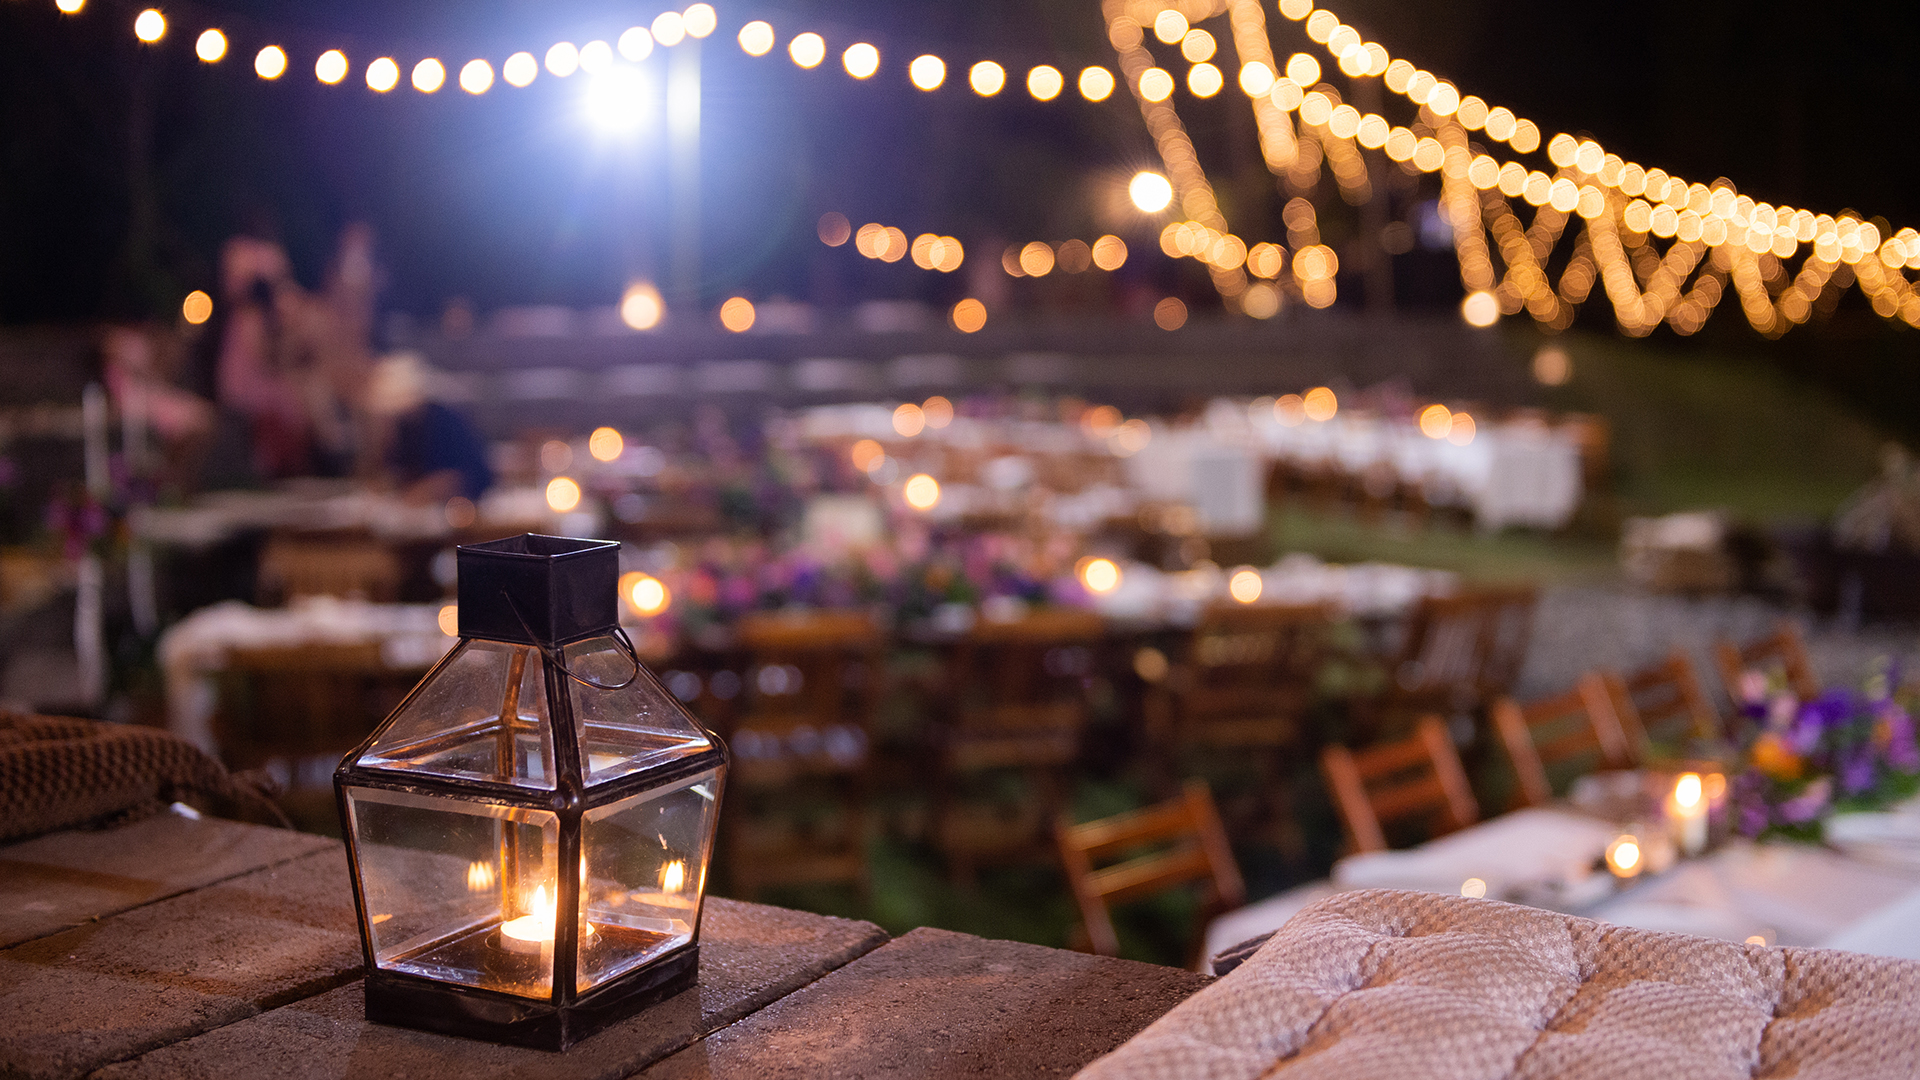 A lit lamp with a candle inside in an outdoor patio with tables and twinkle lights.